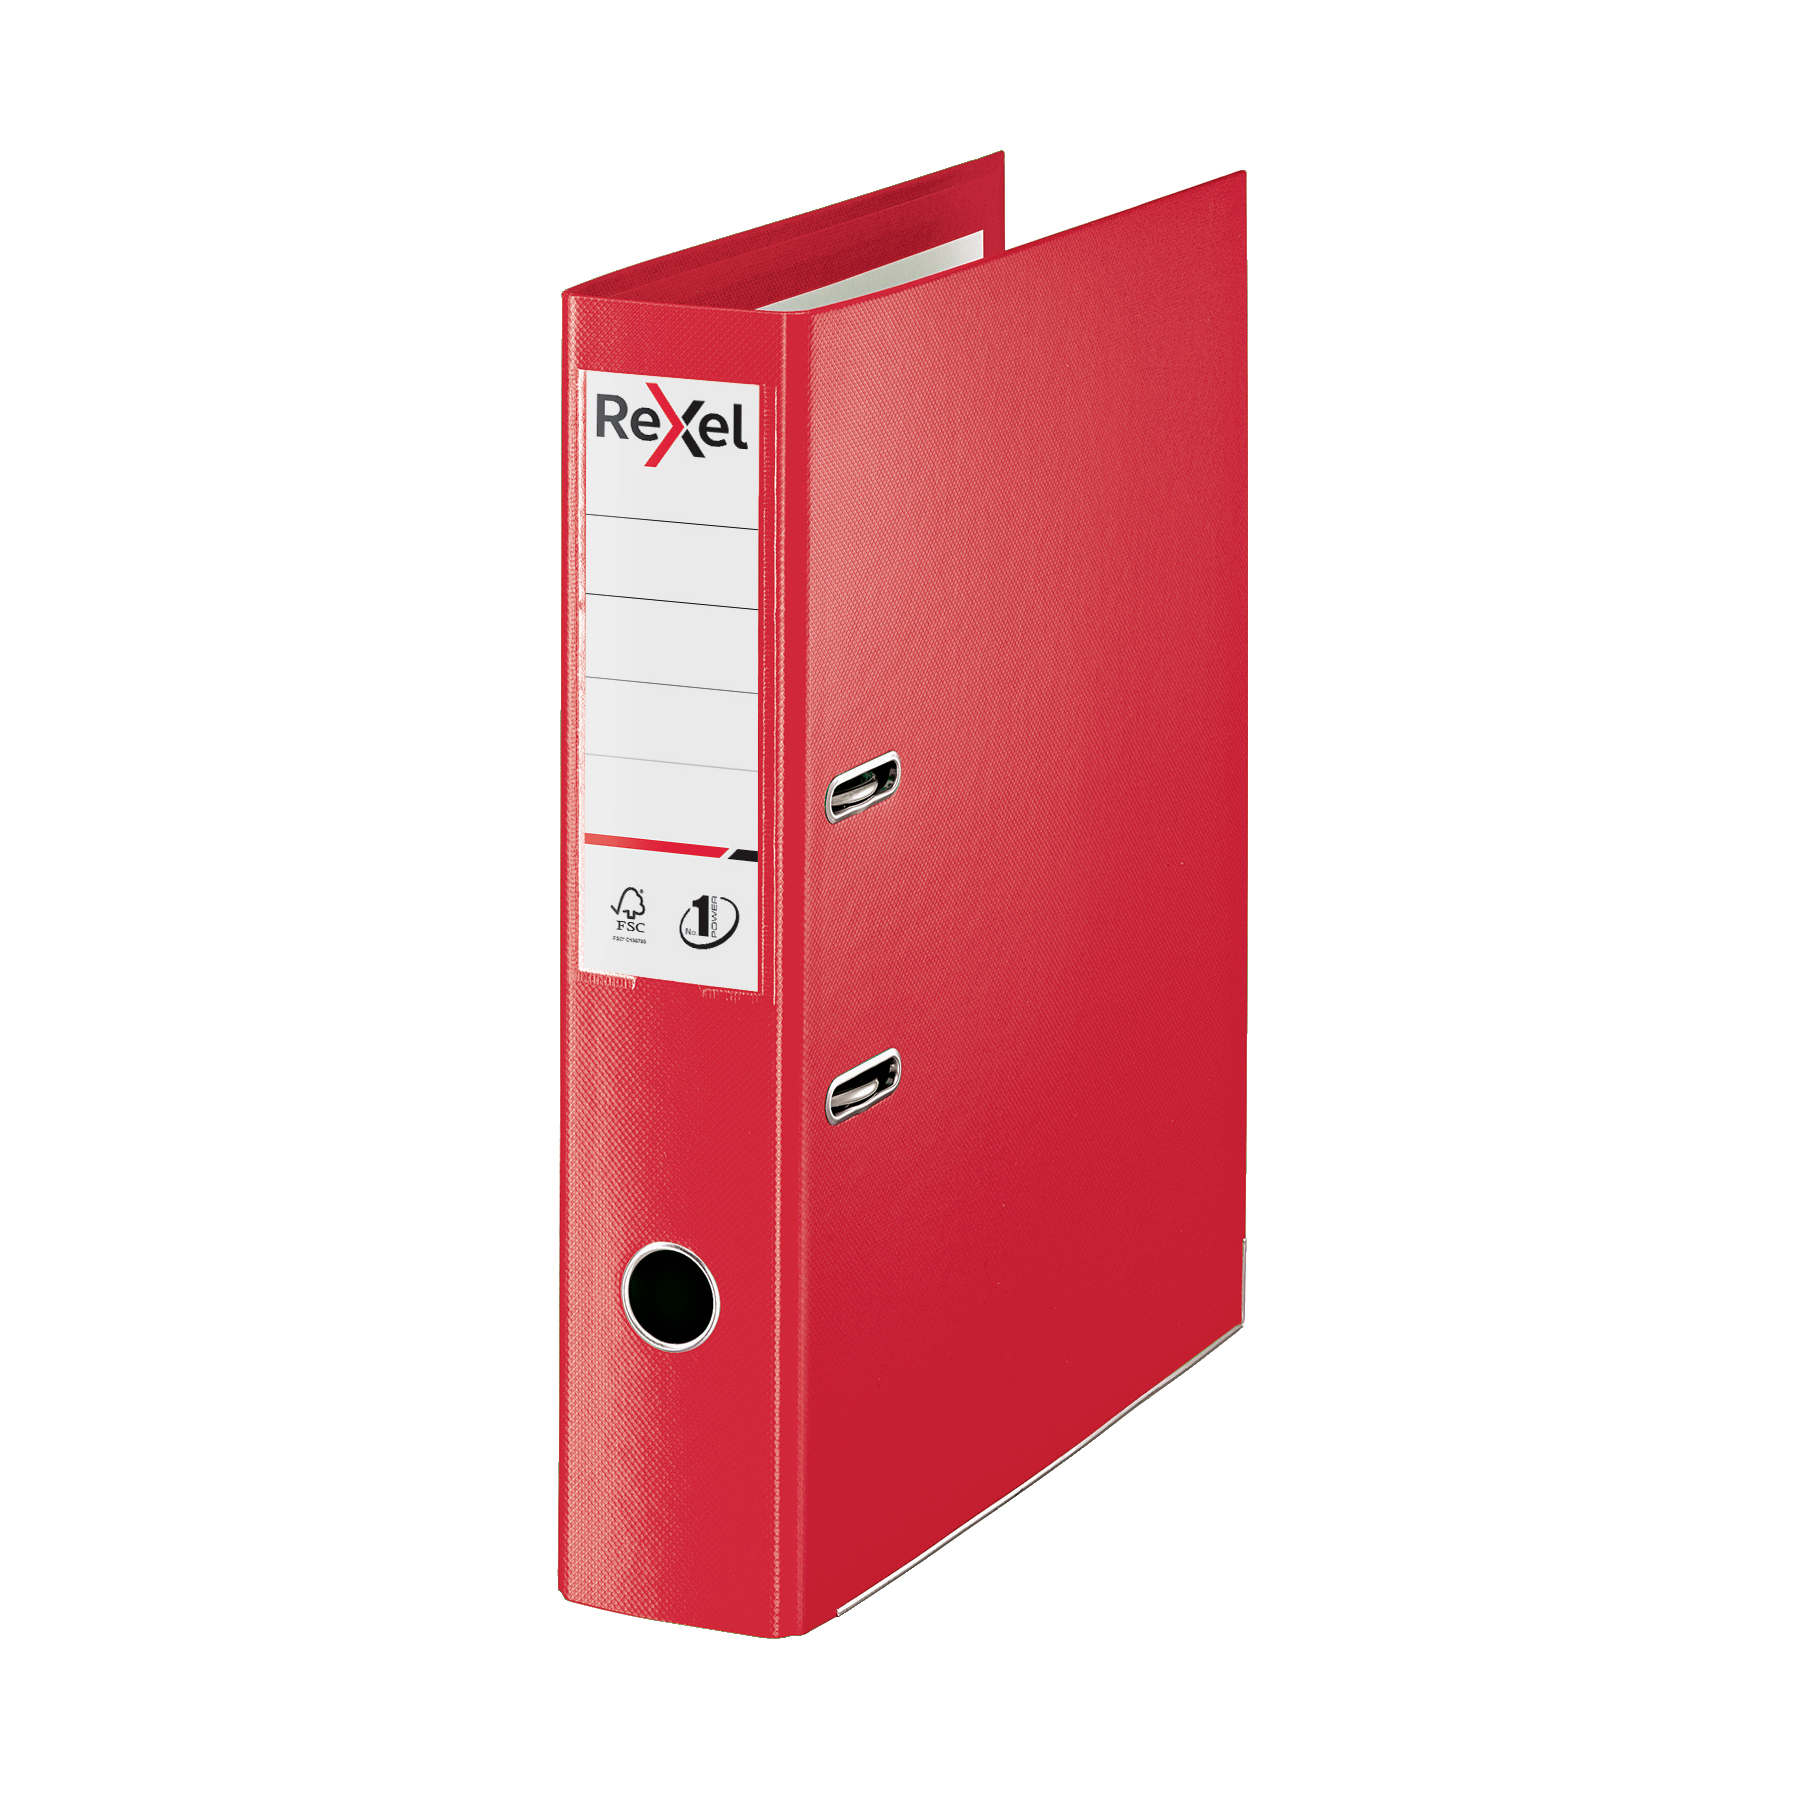 Lever arch file Rexel Choices LArch File PP 75mm FScap Red Ref 2115513